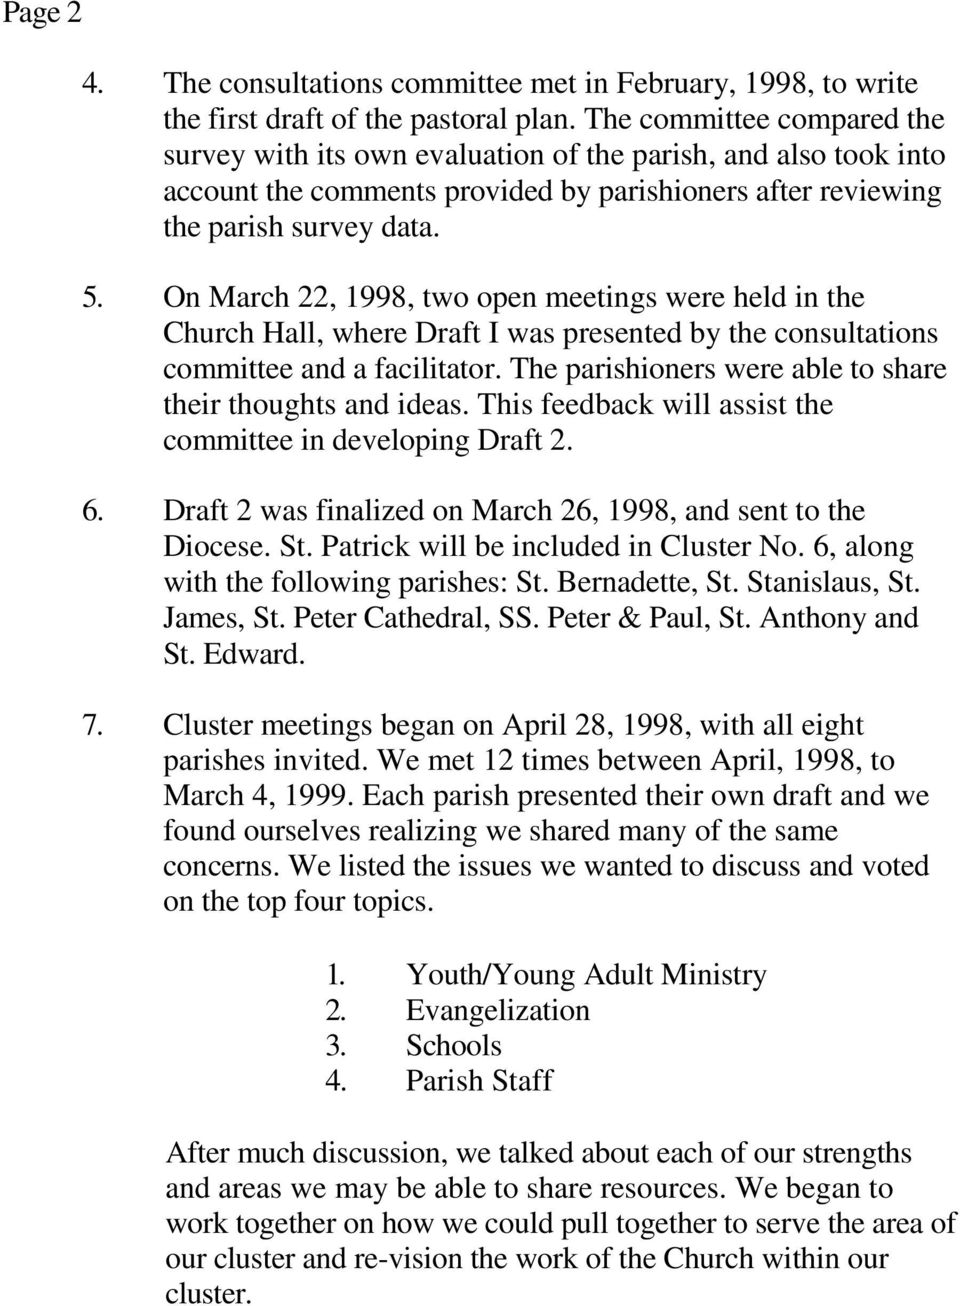 On March 22, 1998, two open meetings were held in the Church Hall, where Draft I was presented by the consultations committee and a facilitator.